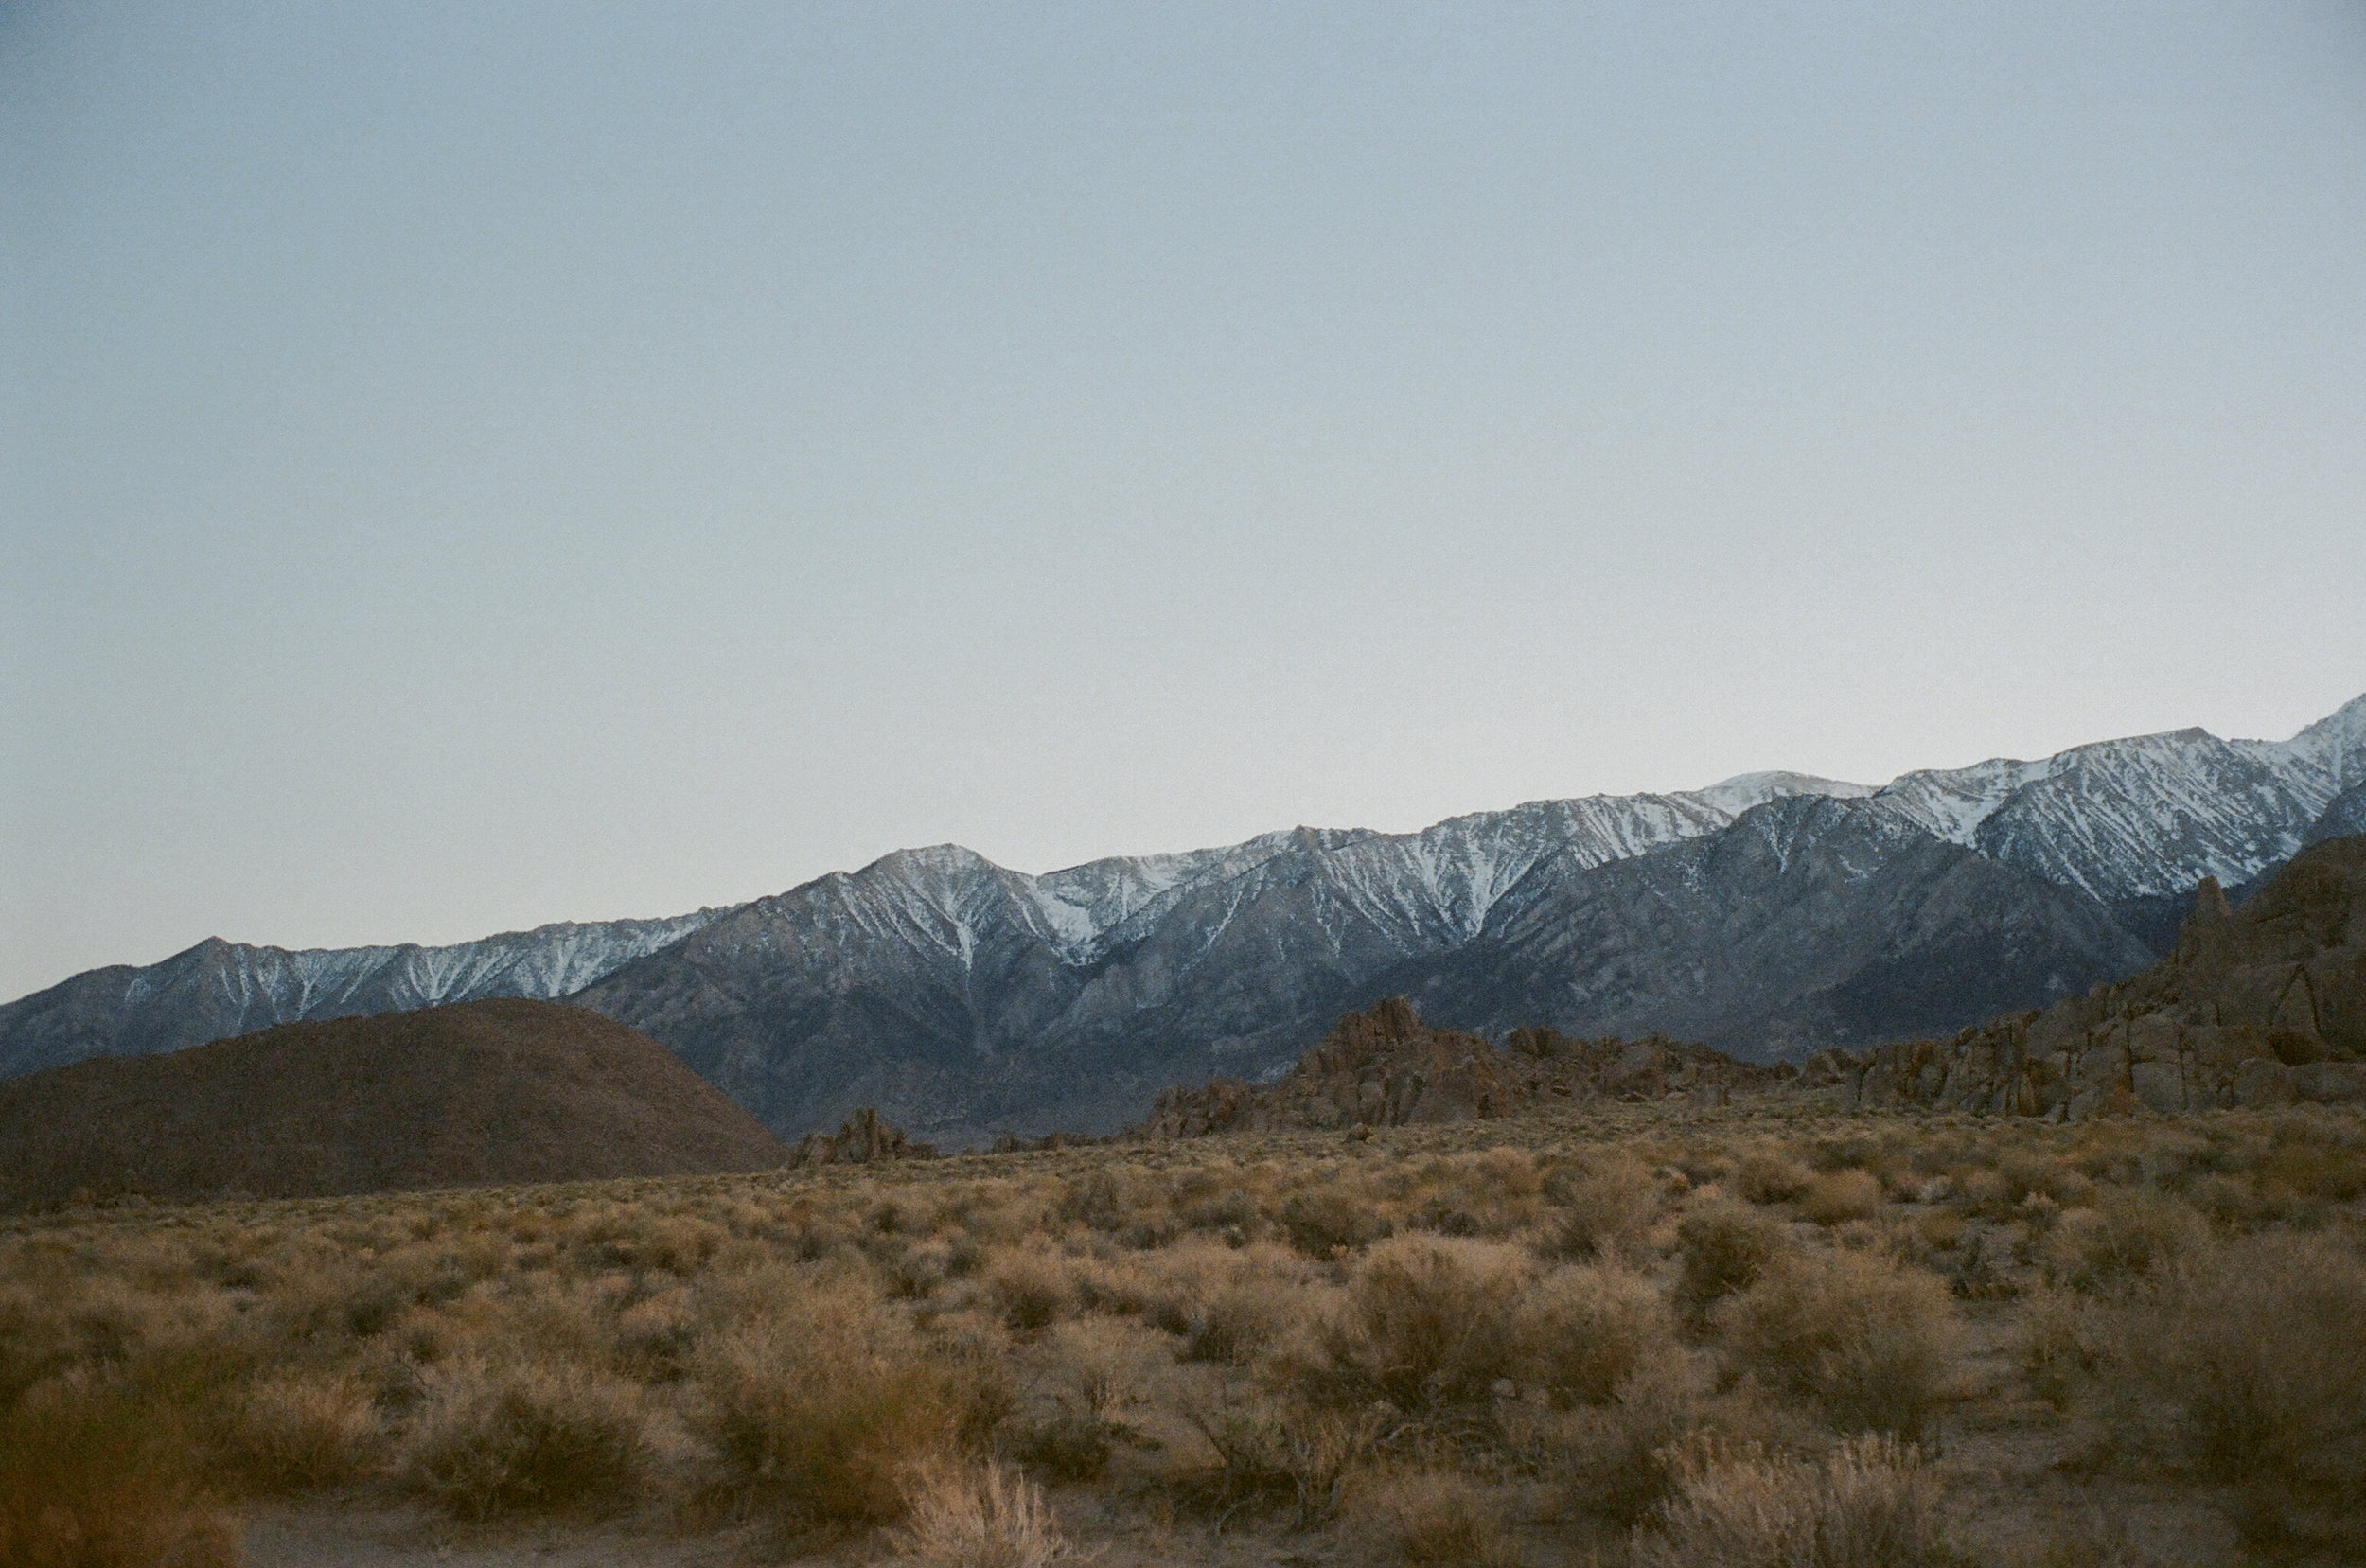 Eastern Sierra mountains by Alabama Hills, Ca